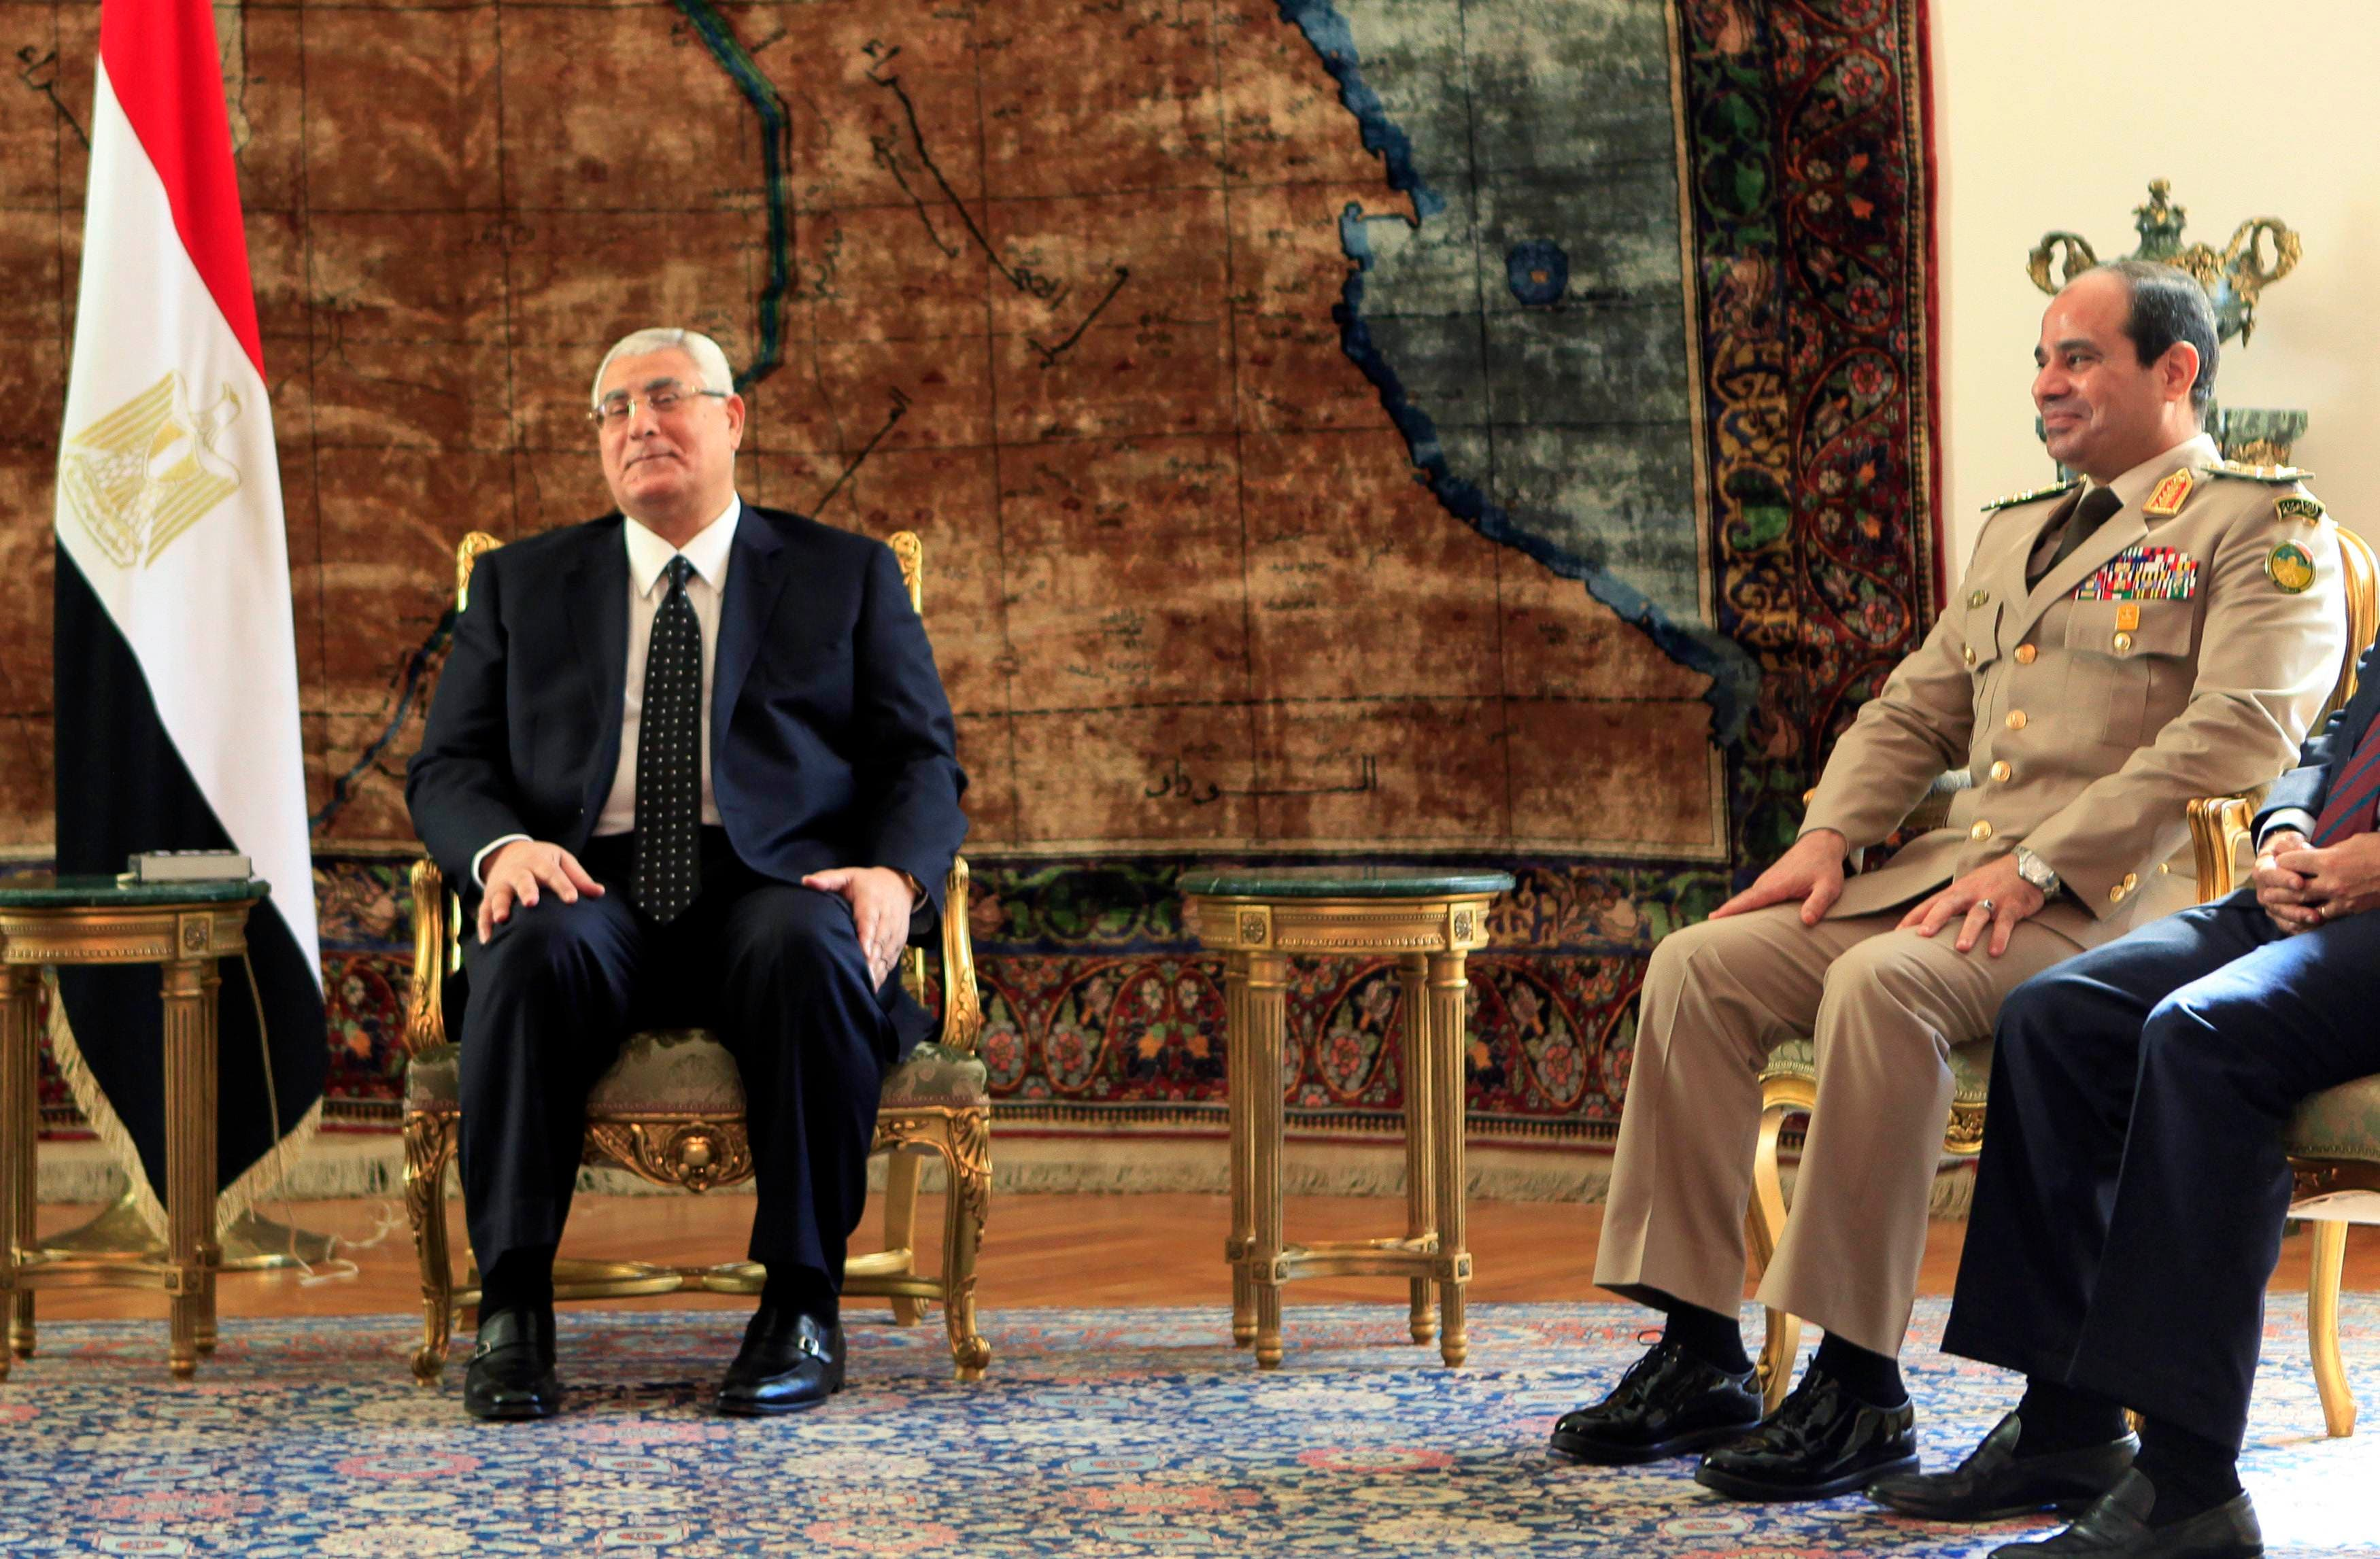 Russia and Egypt in key Cairo talks (Reuters)